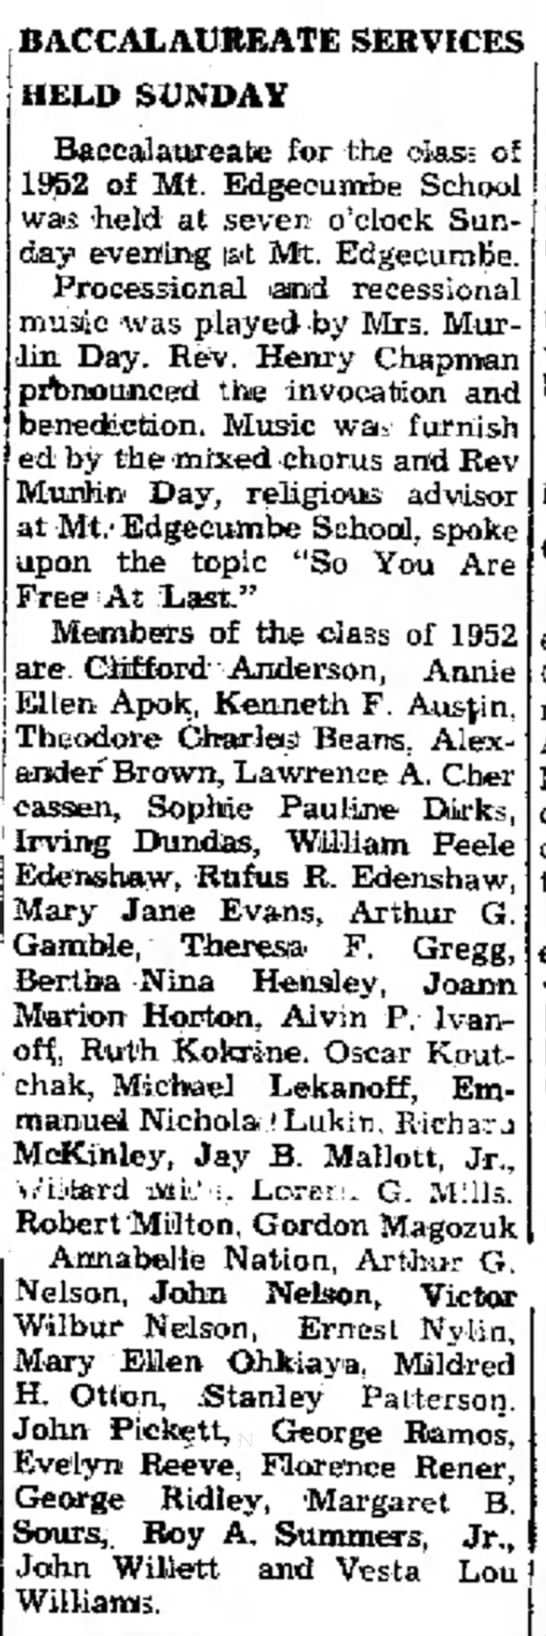 Baccalaureate Service Held Sunday. The Daily Sitka Sentinel (Sitka, Alaska) May 12, 1952, p 3 -